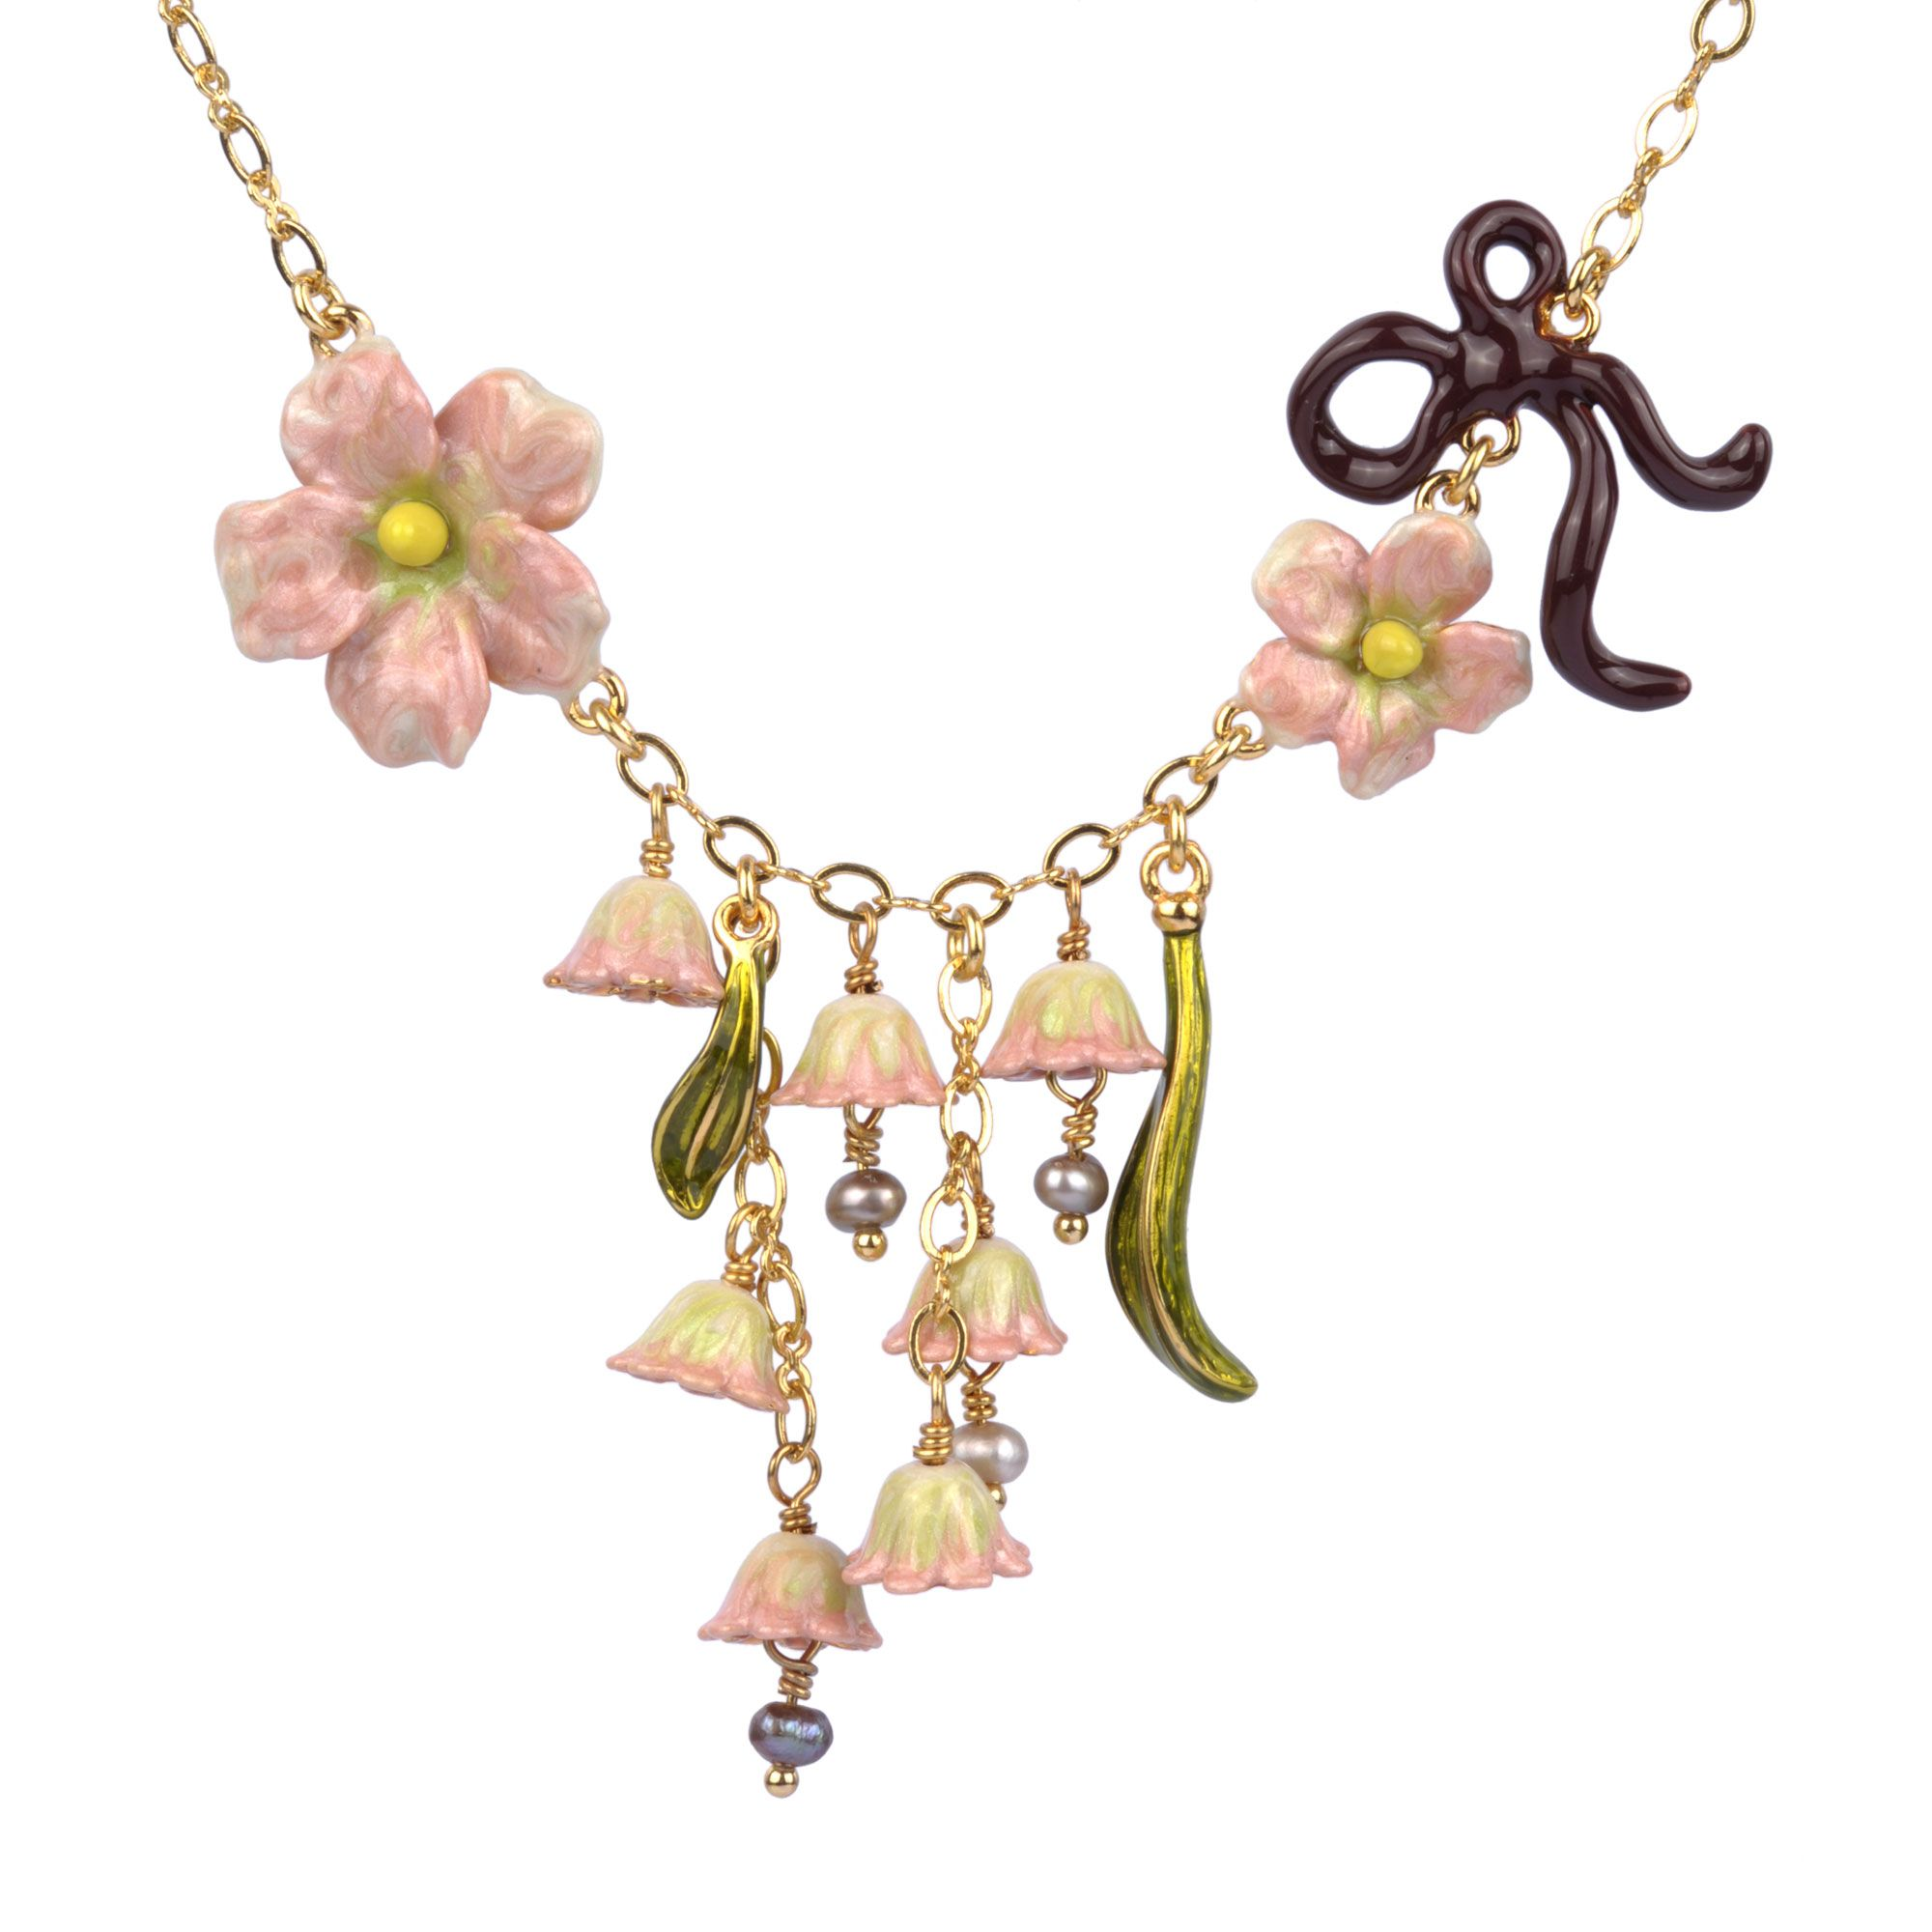 Jardins secrets necklace